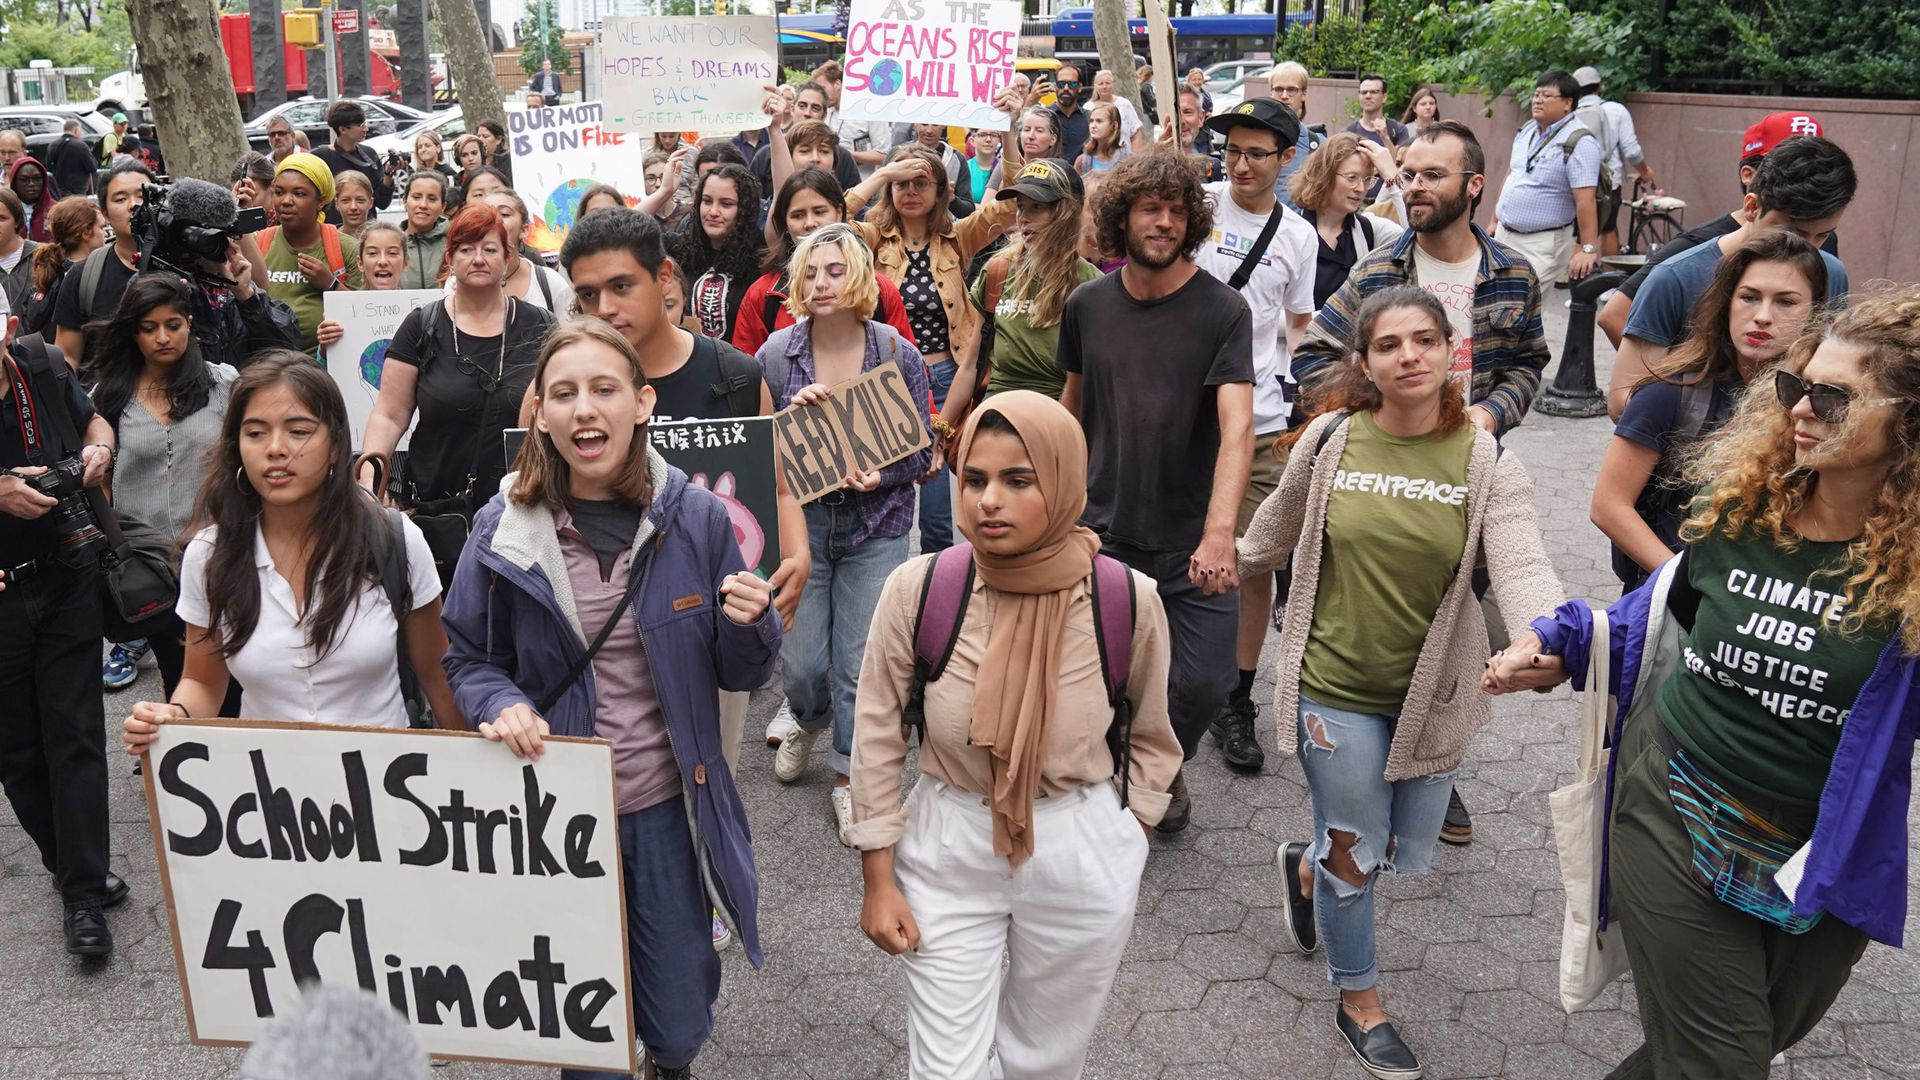 Students march outside the United Nations during a protest against climate change on September 6, 2019 in New York.